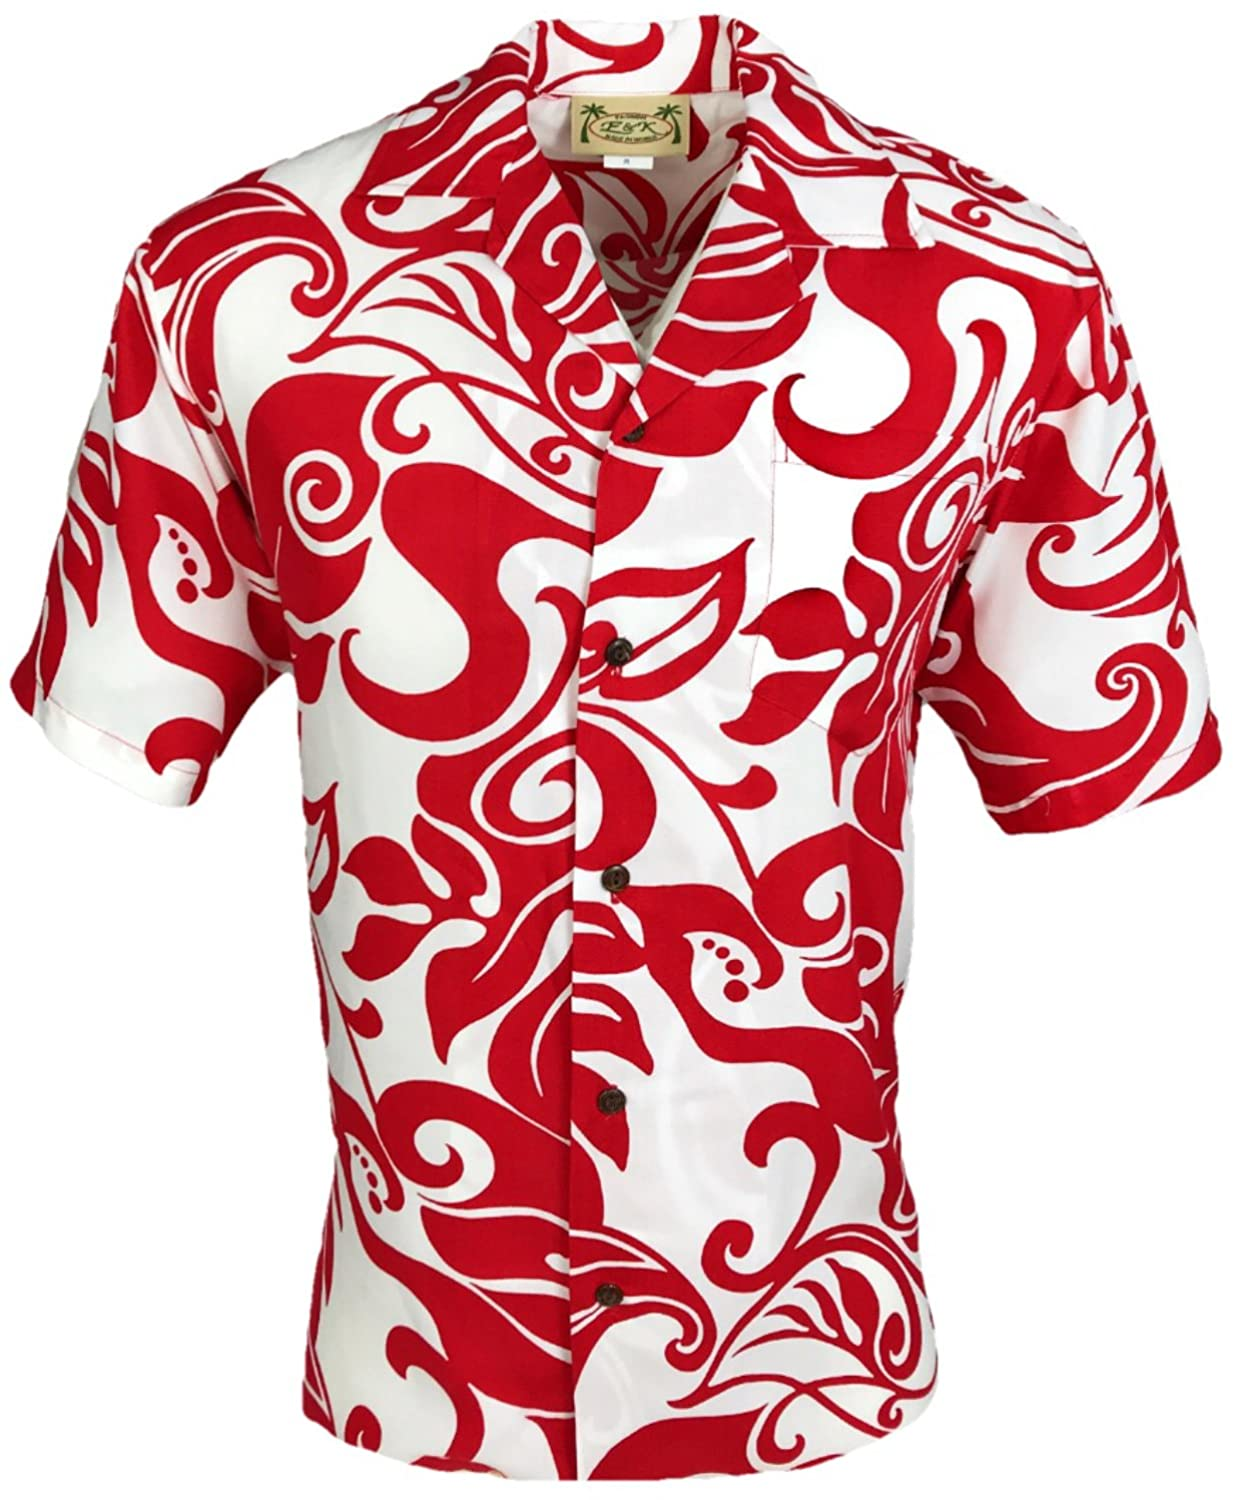 72d563b4 Stylish and Original Hawaiian Shirt Design looks great everywhere you go.  Lightweight, High Quality Fabric and Relaxed Fit will keep you cool and ...